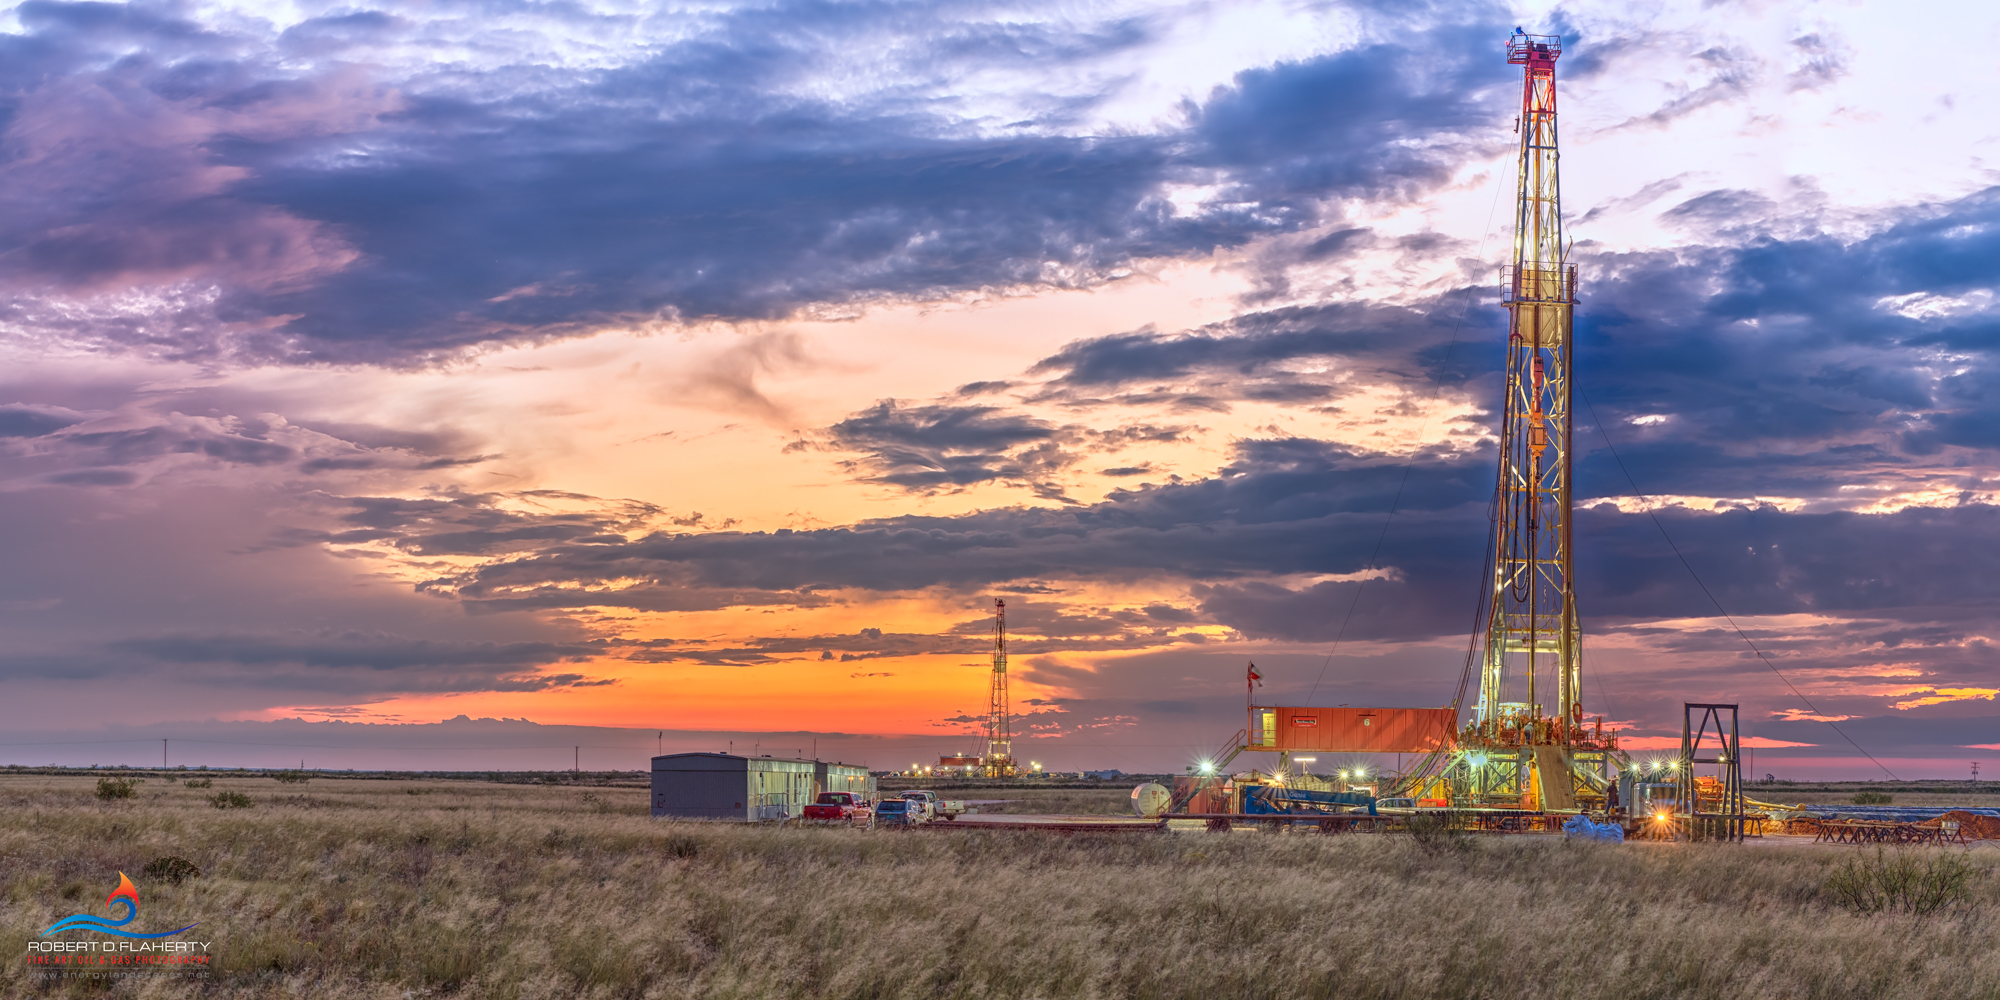 drilling rig, directional well, Robinson Drilling, high resolution, panorama, casing, oilfield casing, surface casing, Texas, San Andres, Permian Basin, sunset, Robinson rig 6, Robinson rig 3, photo